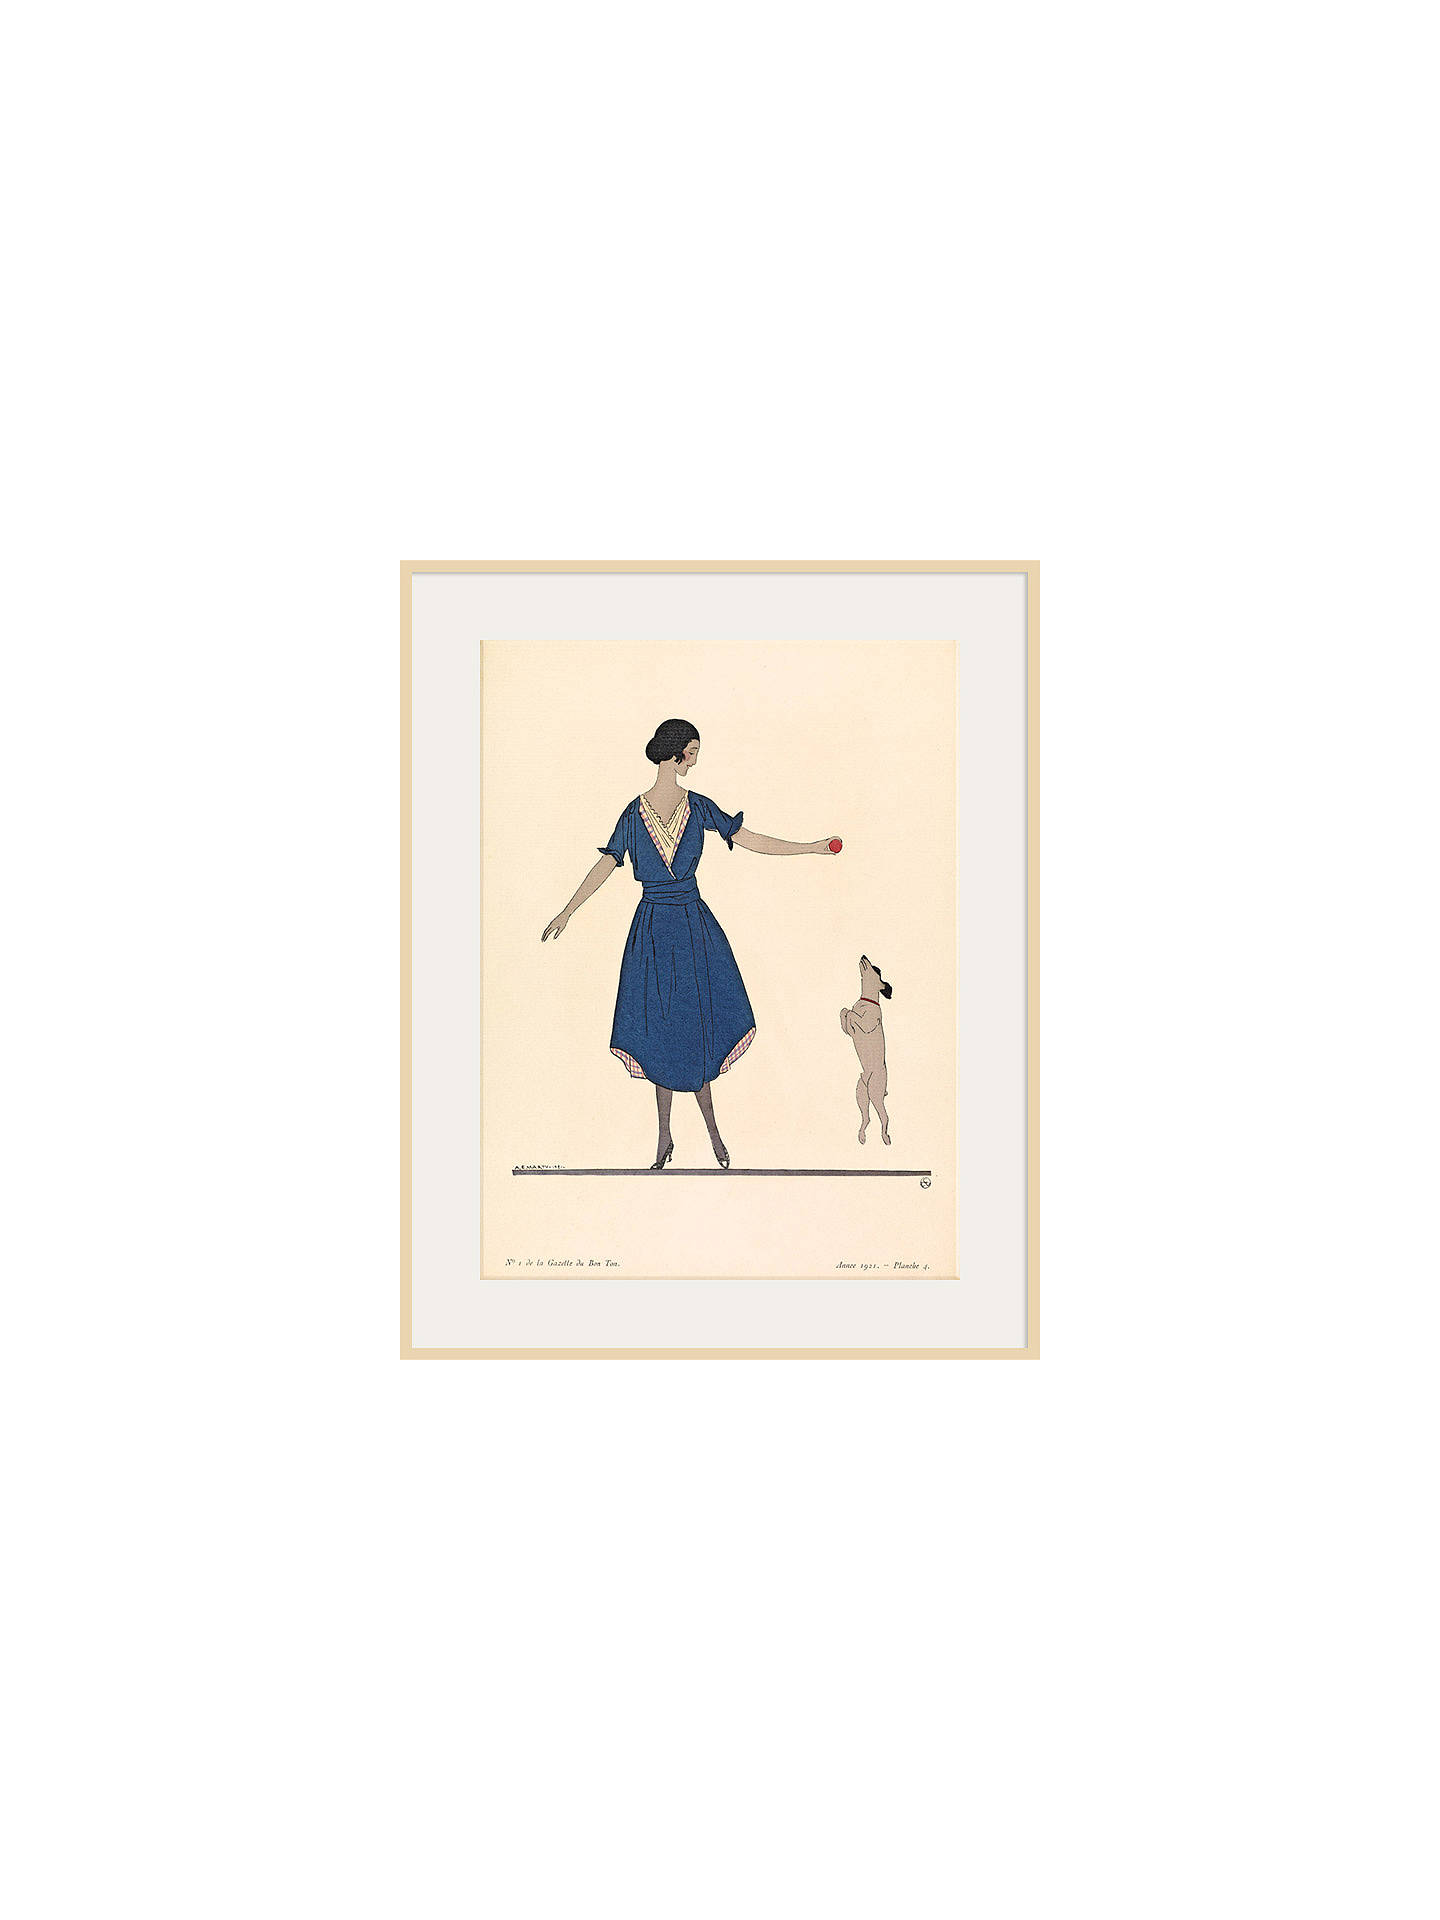 BuyThe Courtauld Gallery, Gazette Du Bon Ton - No 1 1921 Hop La Print, 50 x 40cm, Natural Ash Framed Print Online at johnlewis.com